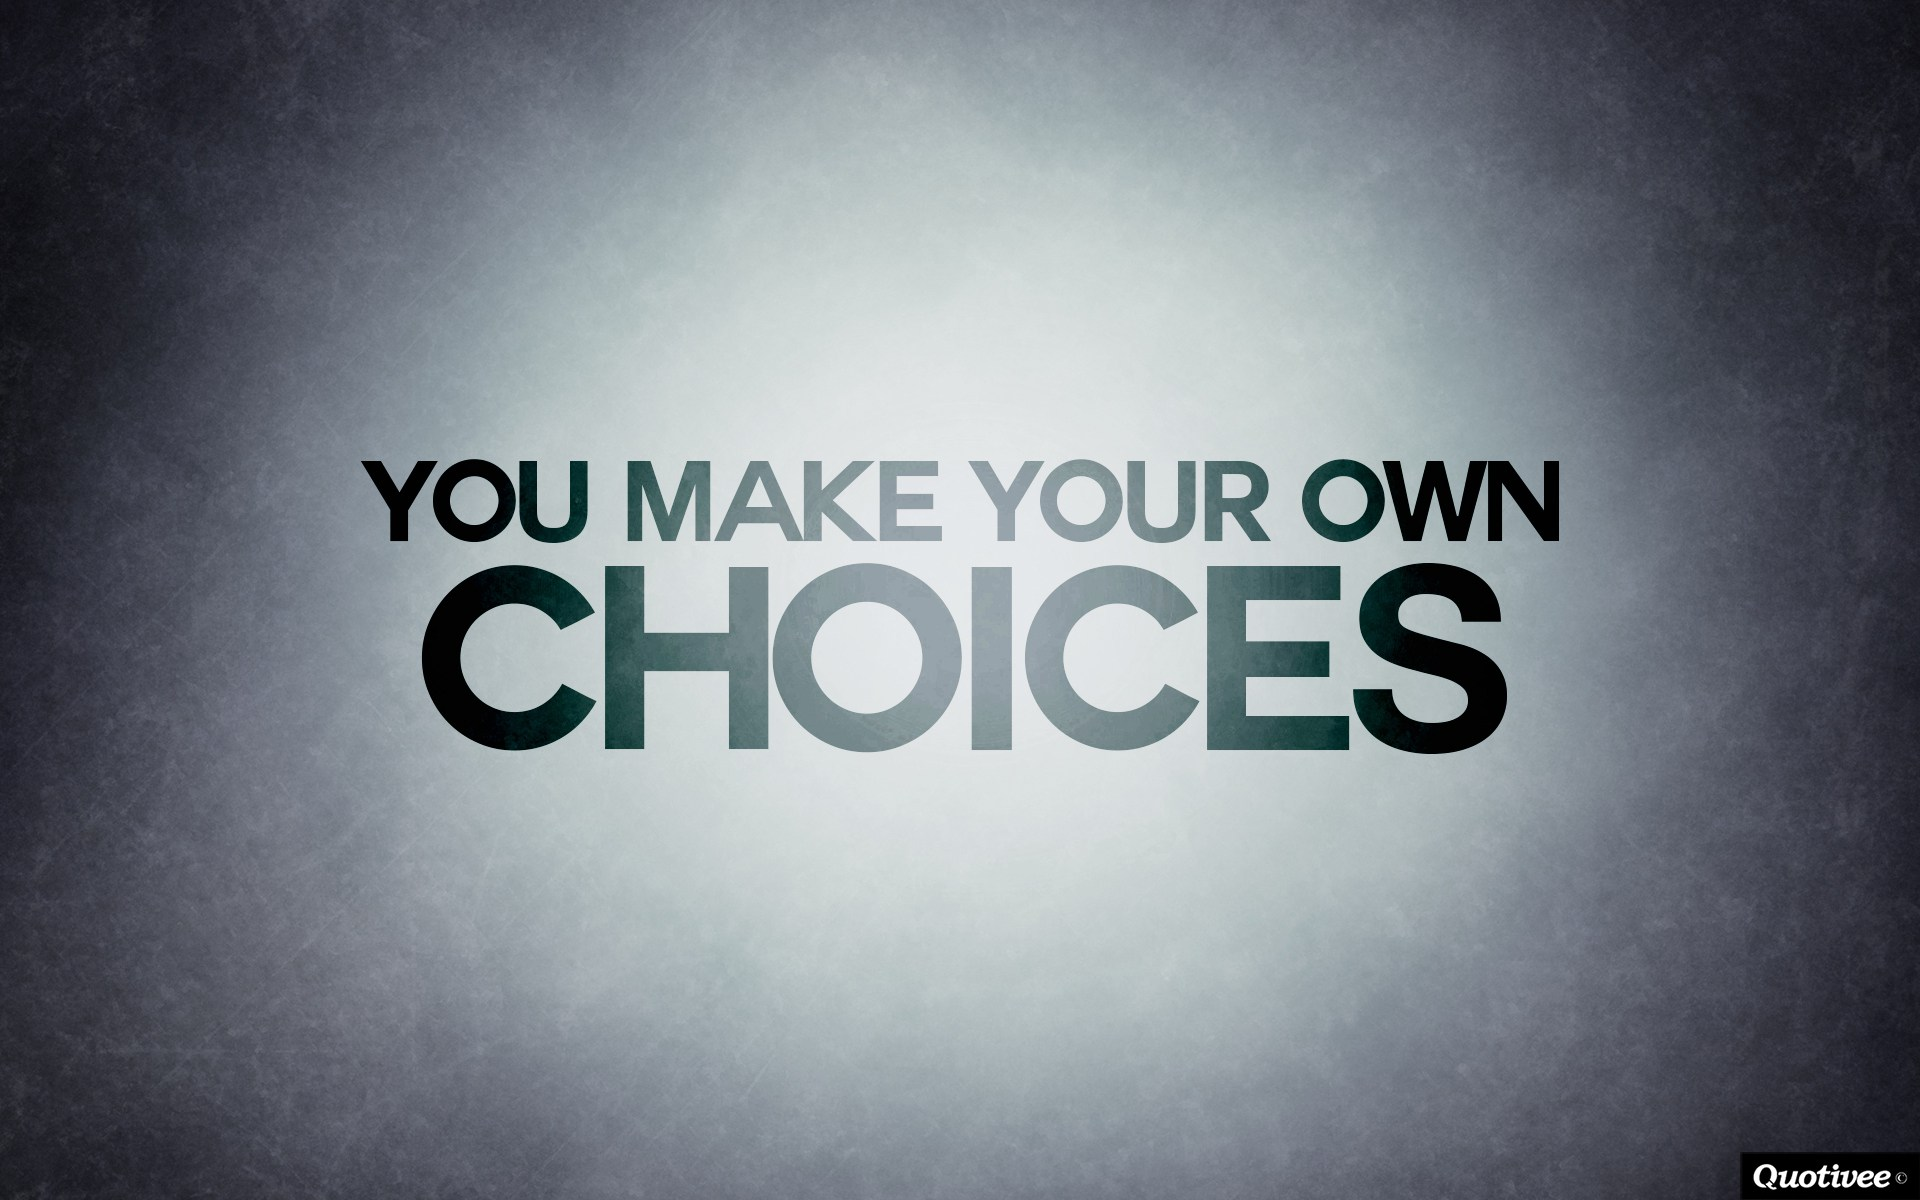 Text Name Wallpaper - You Make Your Own Decisions , HD Wallpaper & Backgrounds